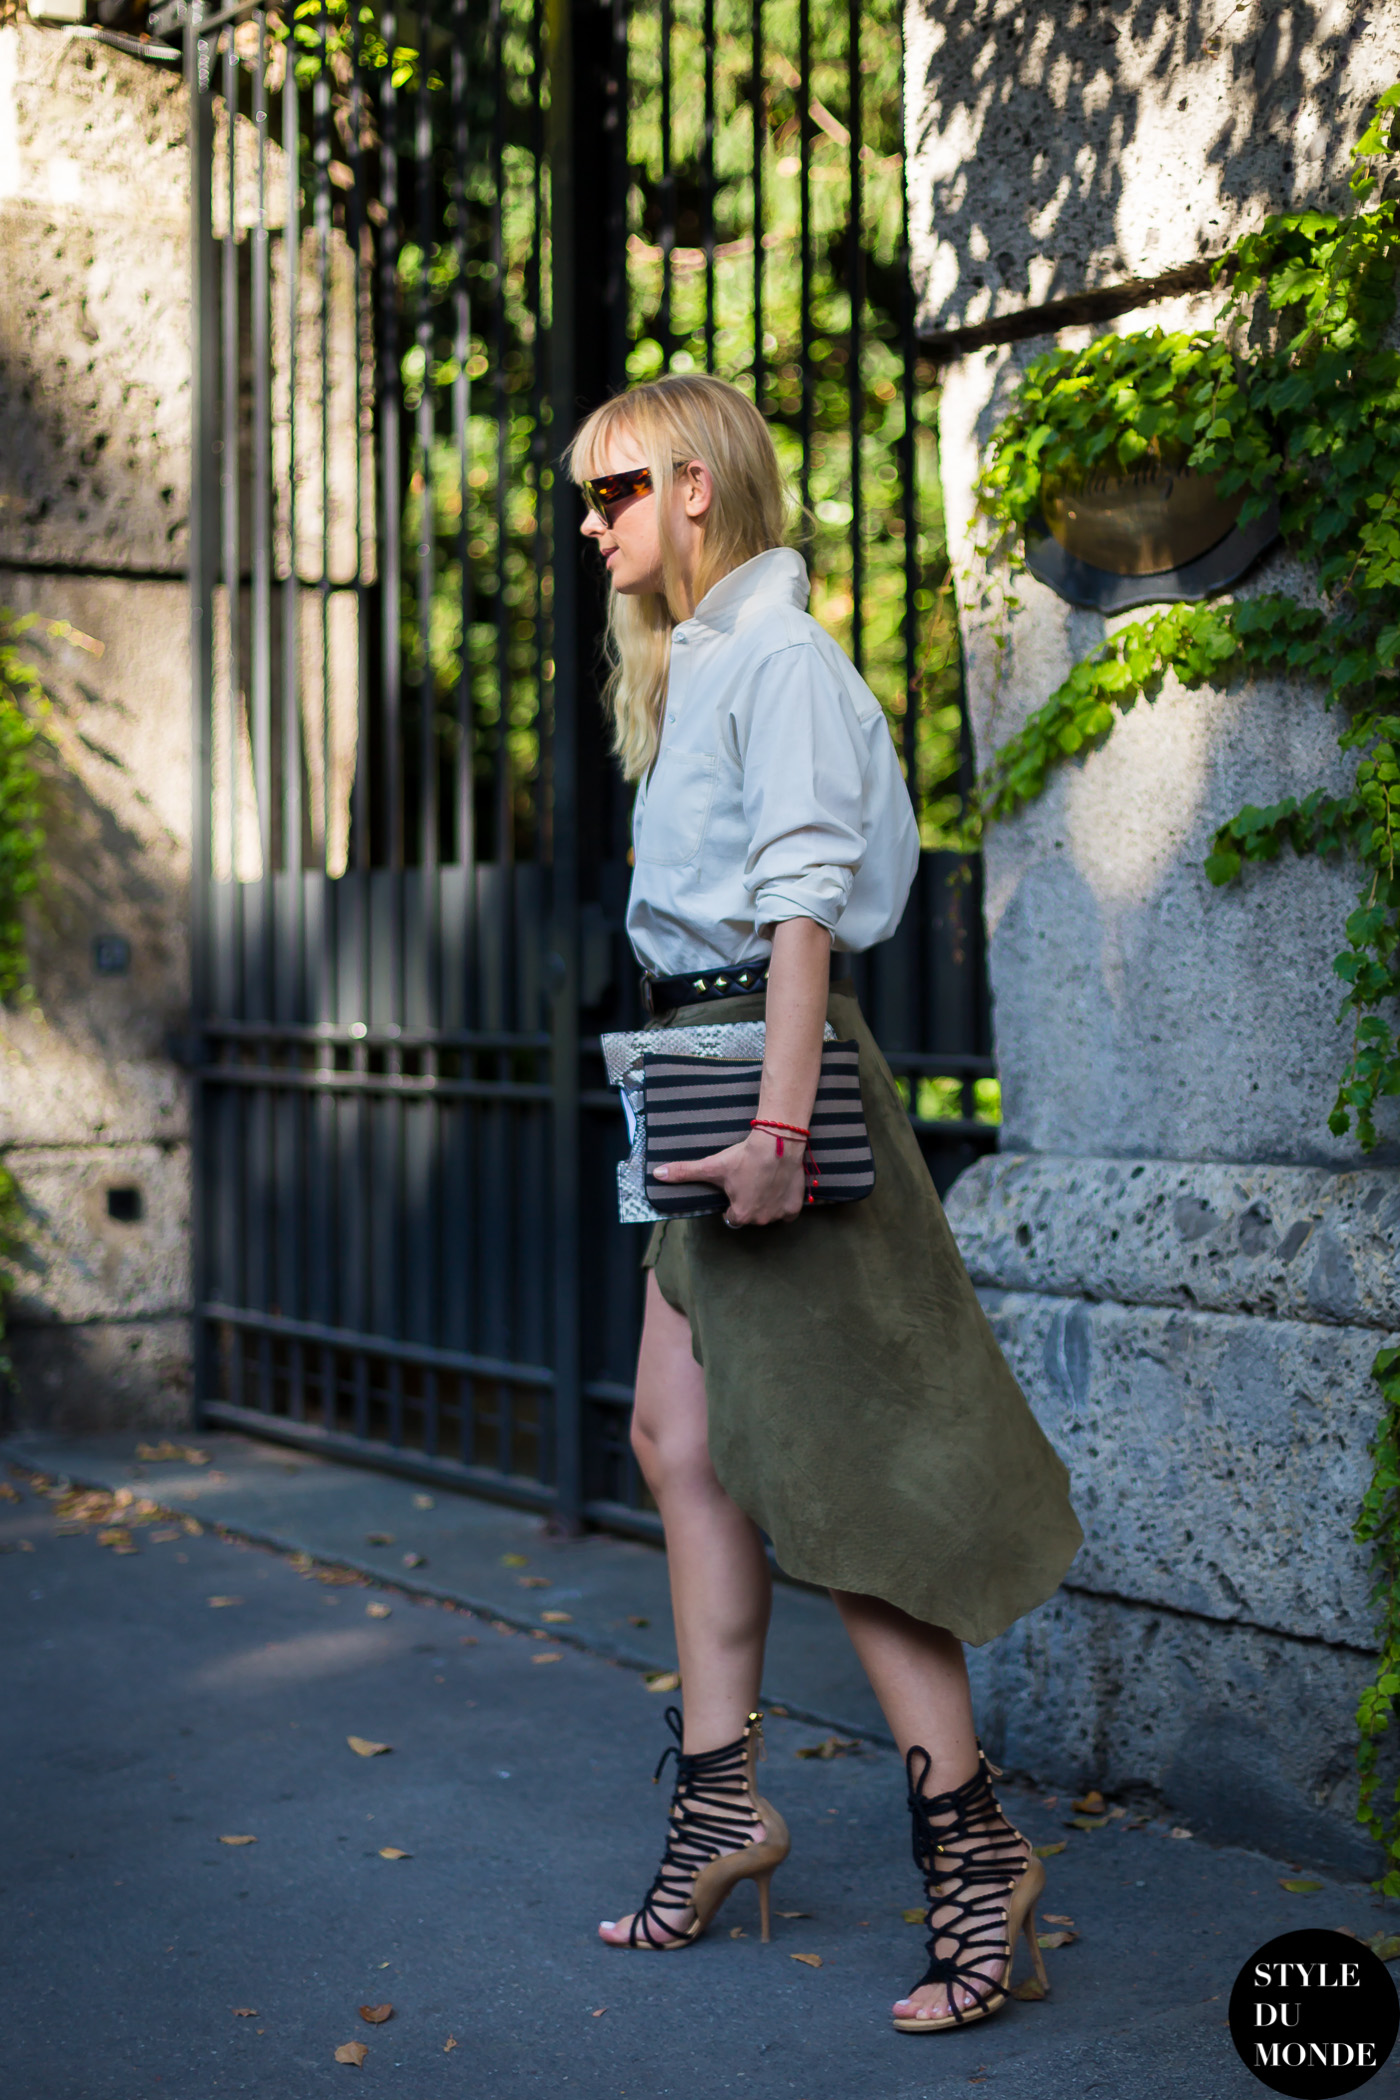 After Max Mara fashion show street style street fashion by STYLEDUMONDE Street Style Fashion Blog